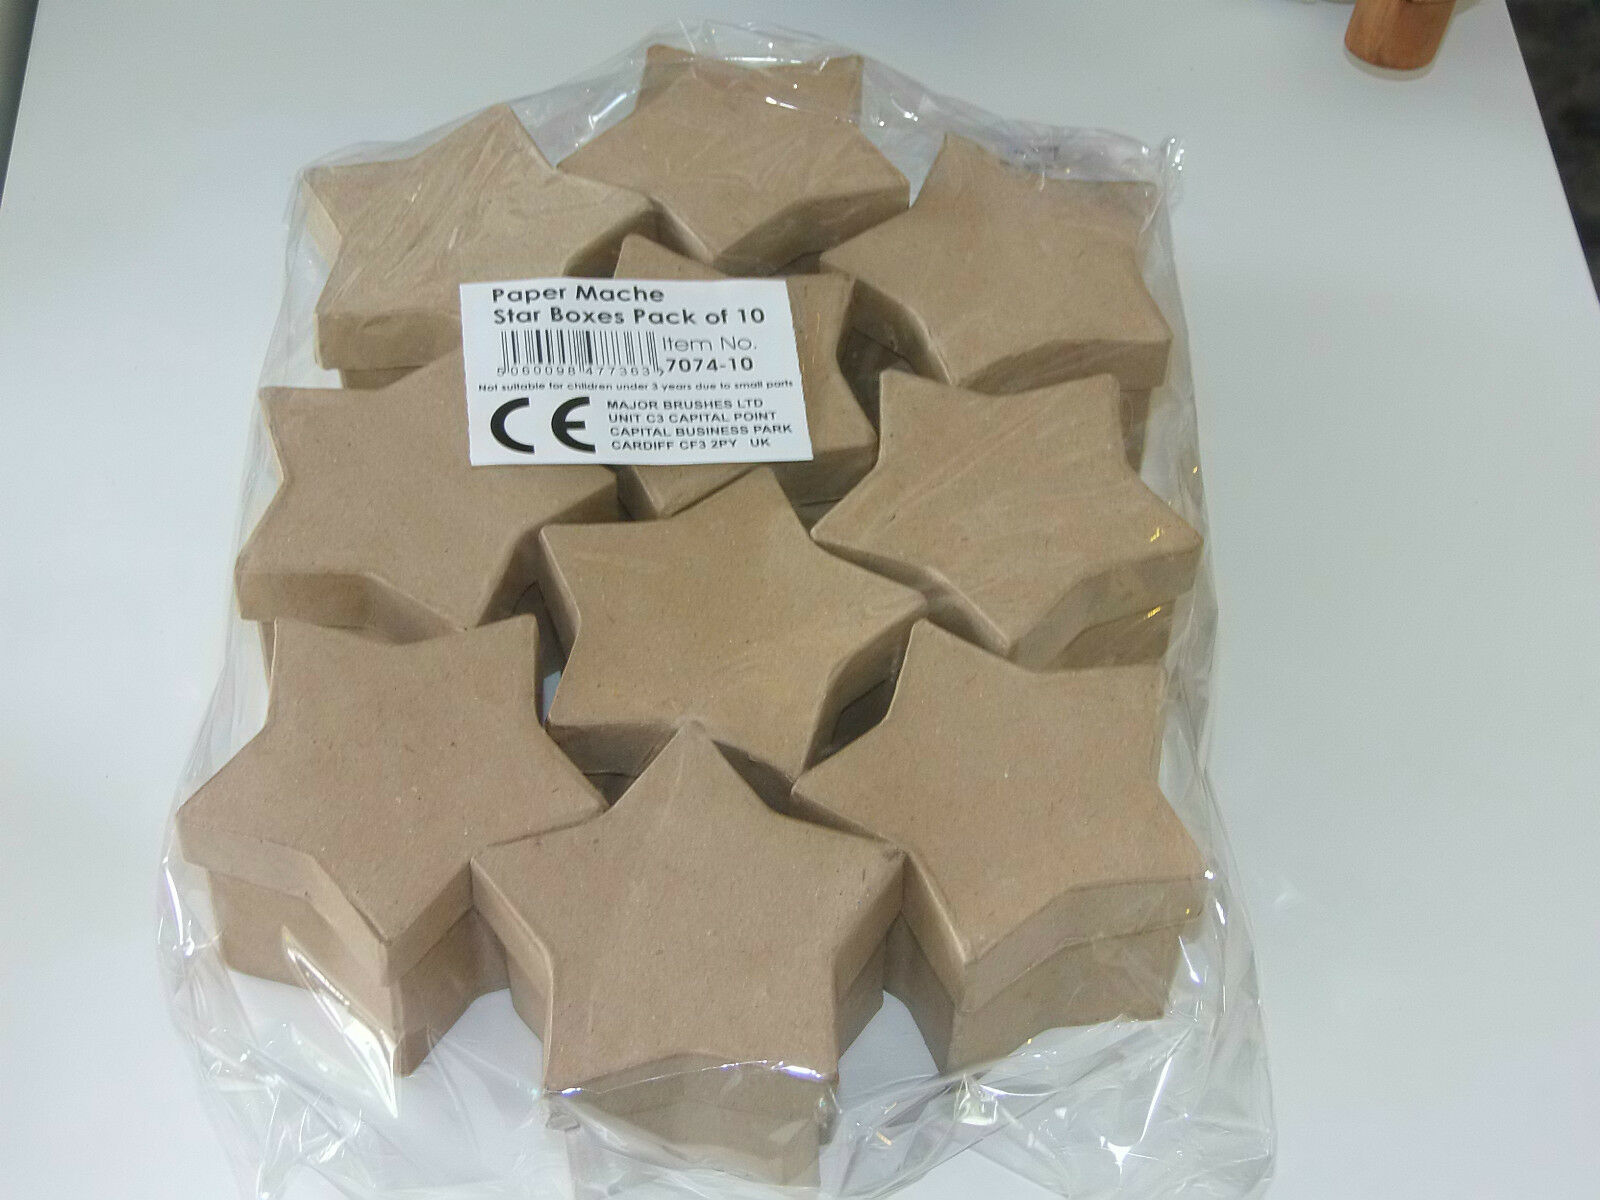 Papier Mache Boxes X 10 Star Shaped Box Craft Projects